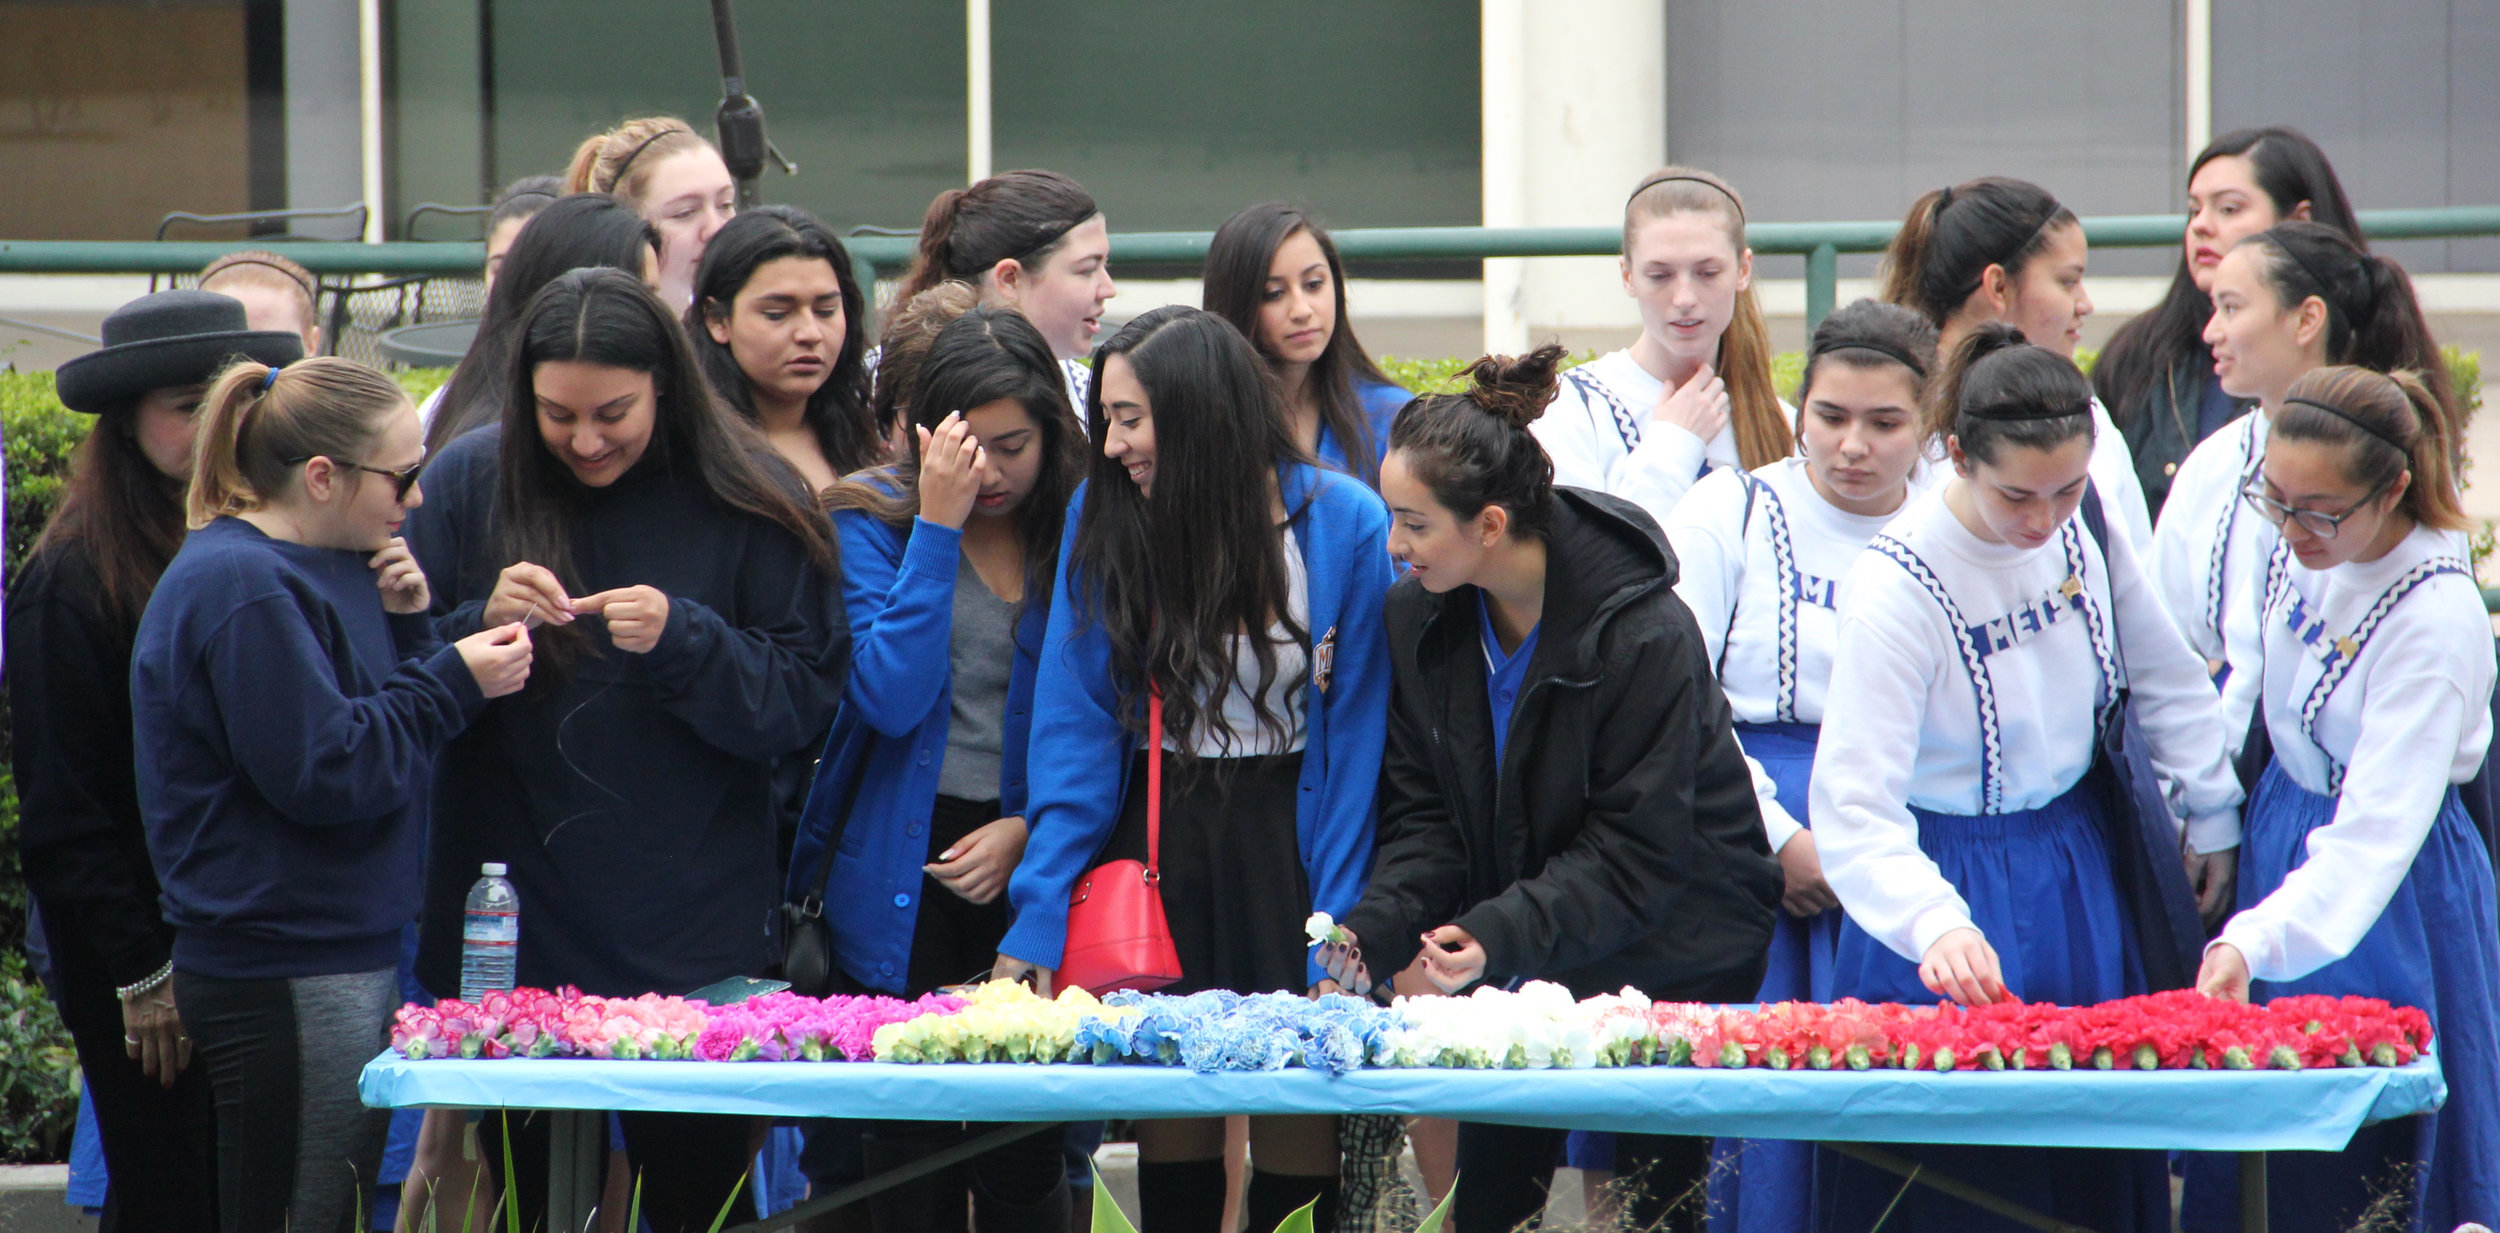 Metaphonian Actives and proteges pause at the lei table and start the lei line.